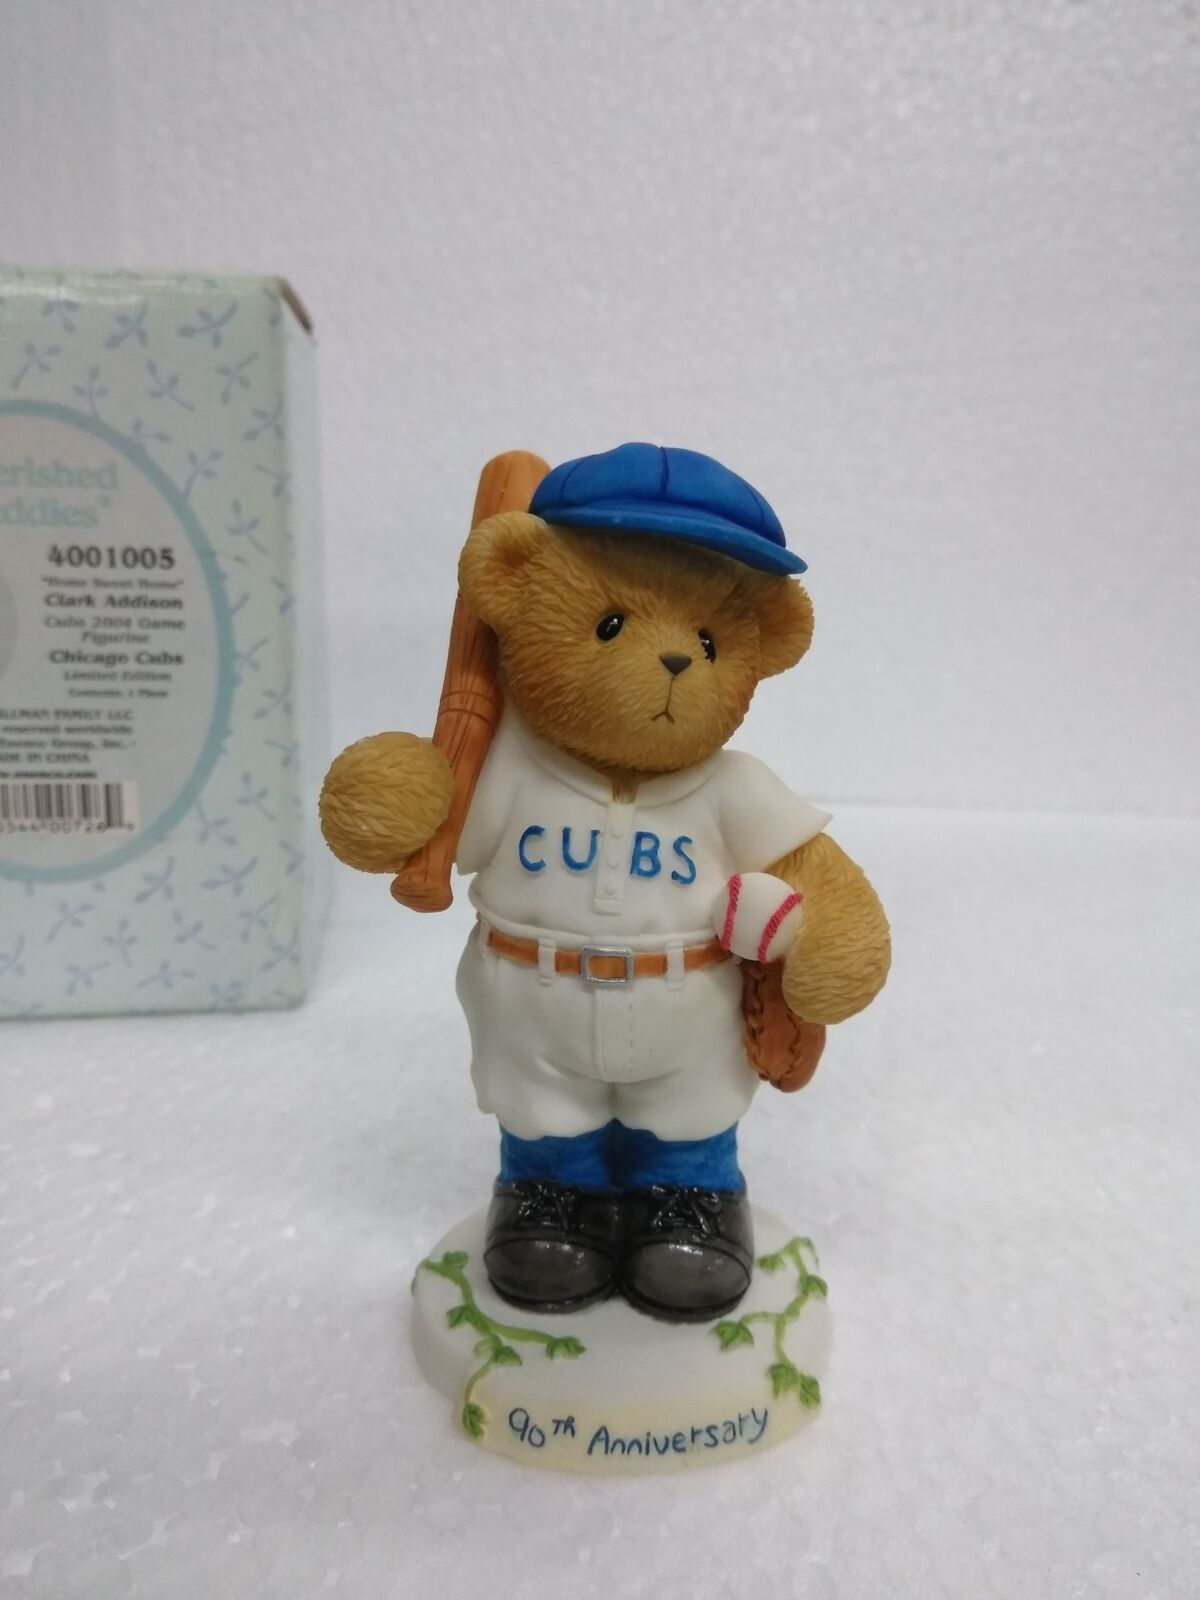 Clark Addison Cubs 2004 Game 90th Anniversary Figurine Cherished Teddies